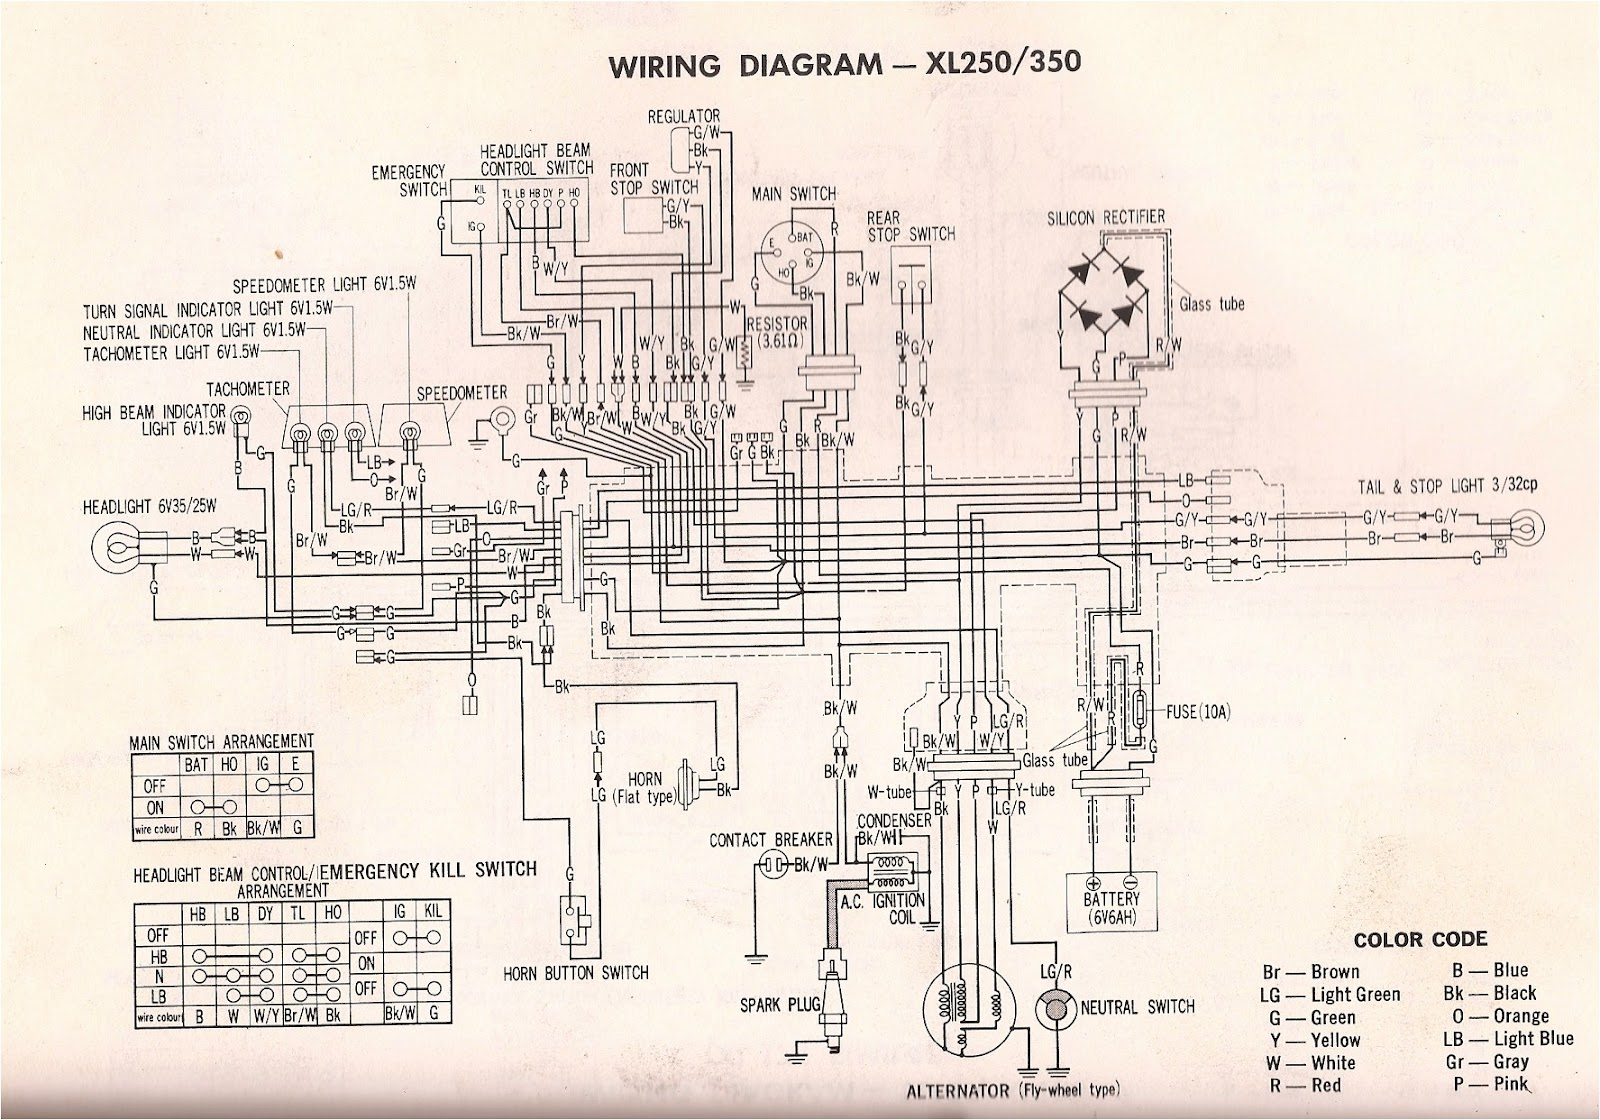 R4L: XL350 Wiring Diagram (and XL250) on switch diagrams, internet of things diagrams, transformer diagrams, honda motorcycle repair diagrams, motor diagrams, smart car diagrams, battery diagrams, friendship bracelet diagrams, gmc fuse box diagrams, lighting diagrams, engine diagrams, electrical diagrams, troubleshooting diagrams, electronic circuit diagrams, pinout diagrams, led circuit diagrams, hvac diagrams, series and parallel circuits diagrams, sincgars radio configurations diagrams,